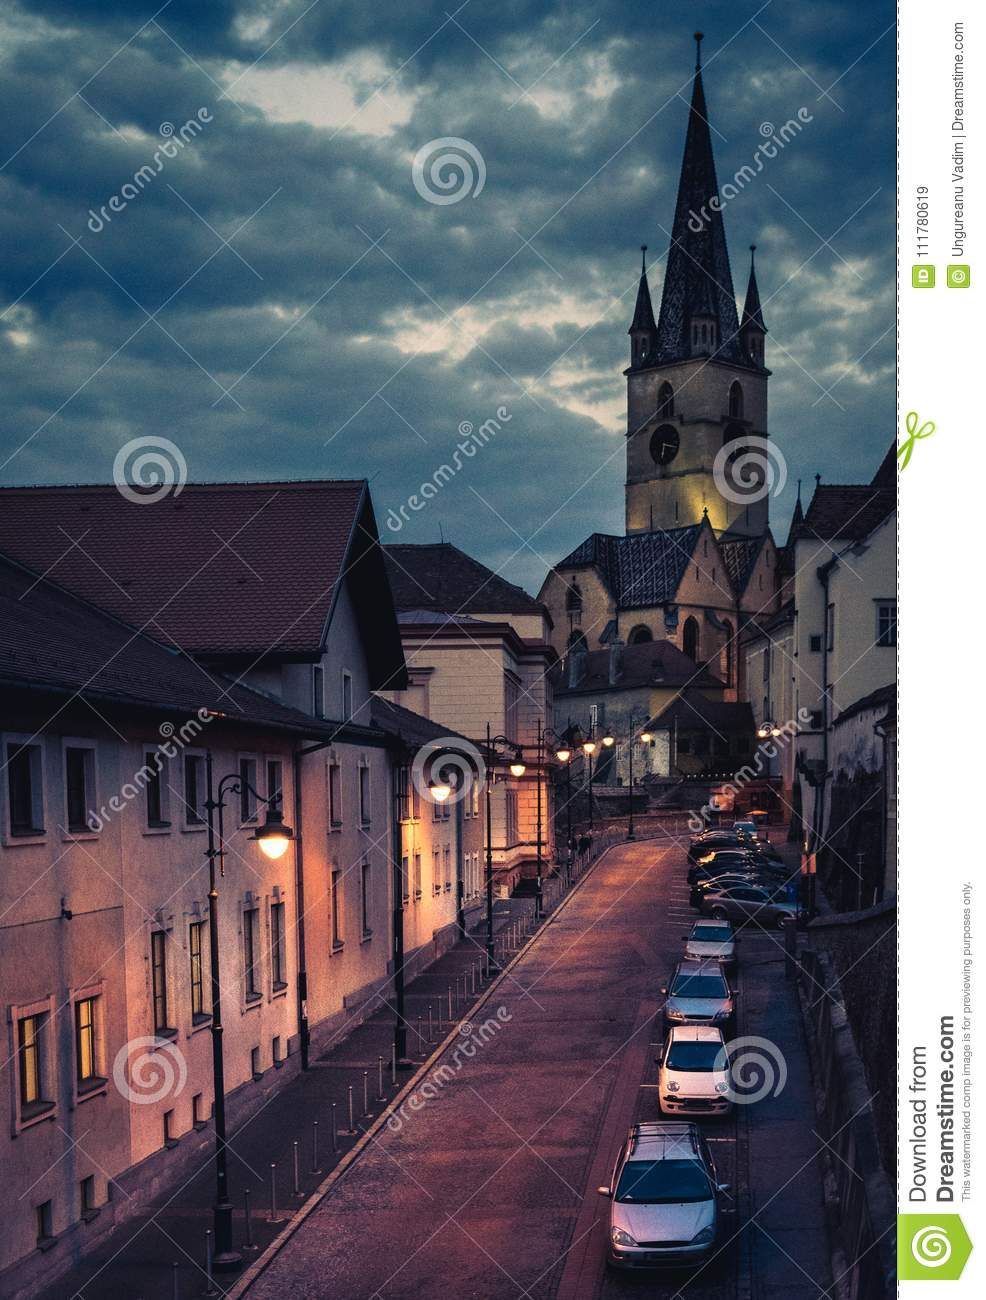 Beautiful medieval architecture with the Evangelical Church in background in Sibiu, Romania